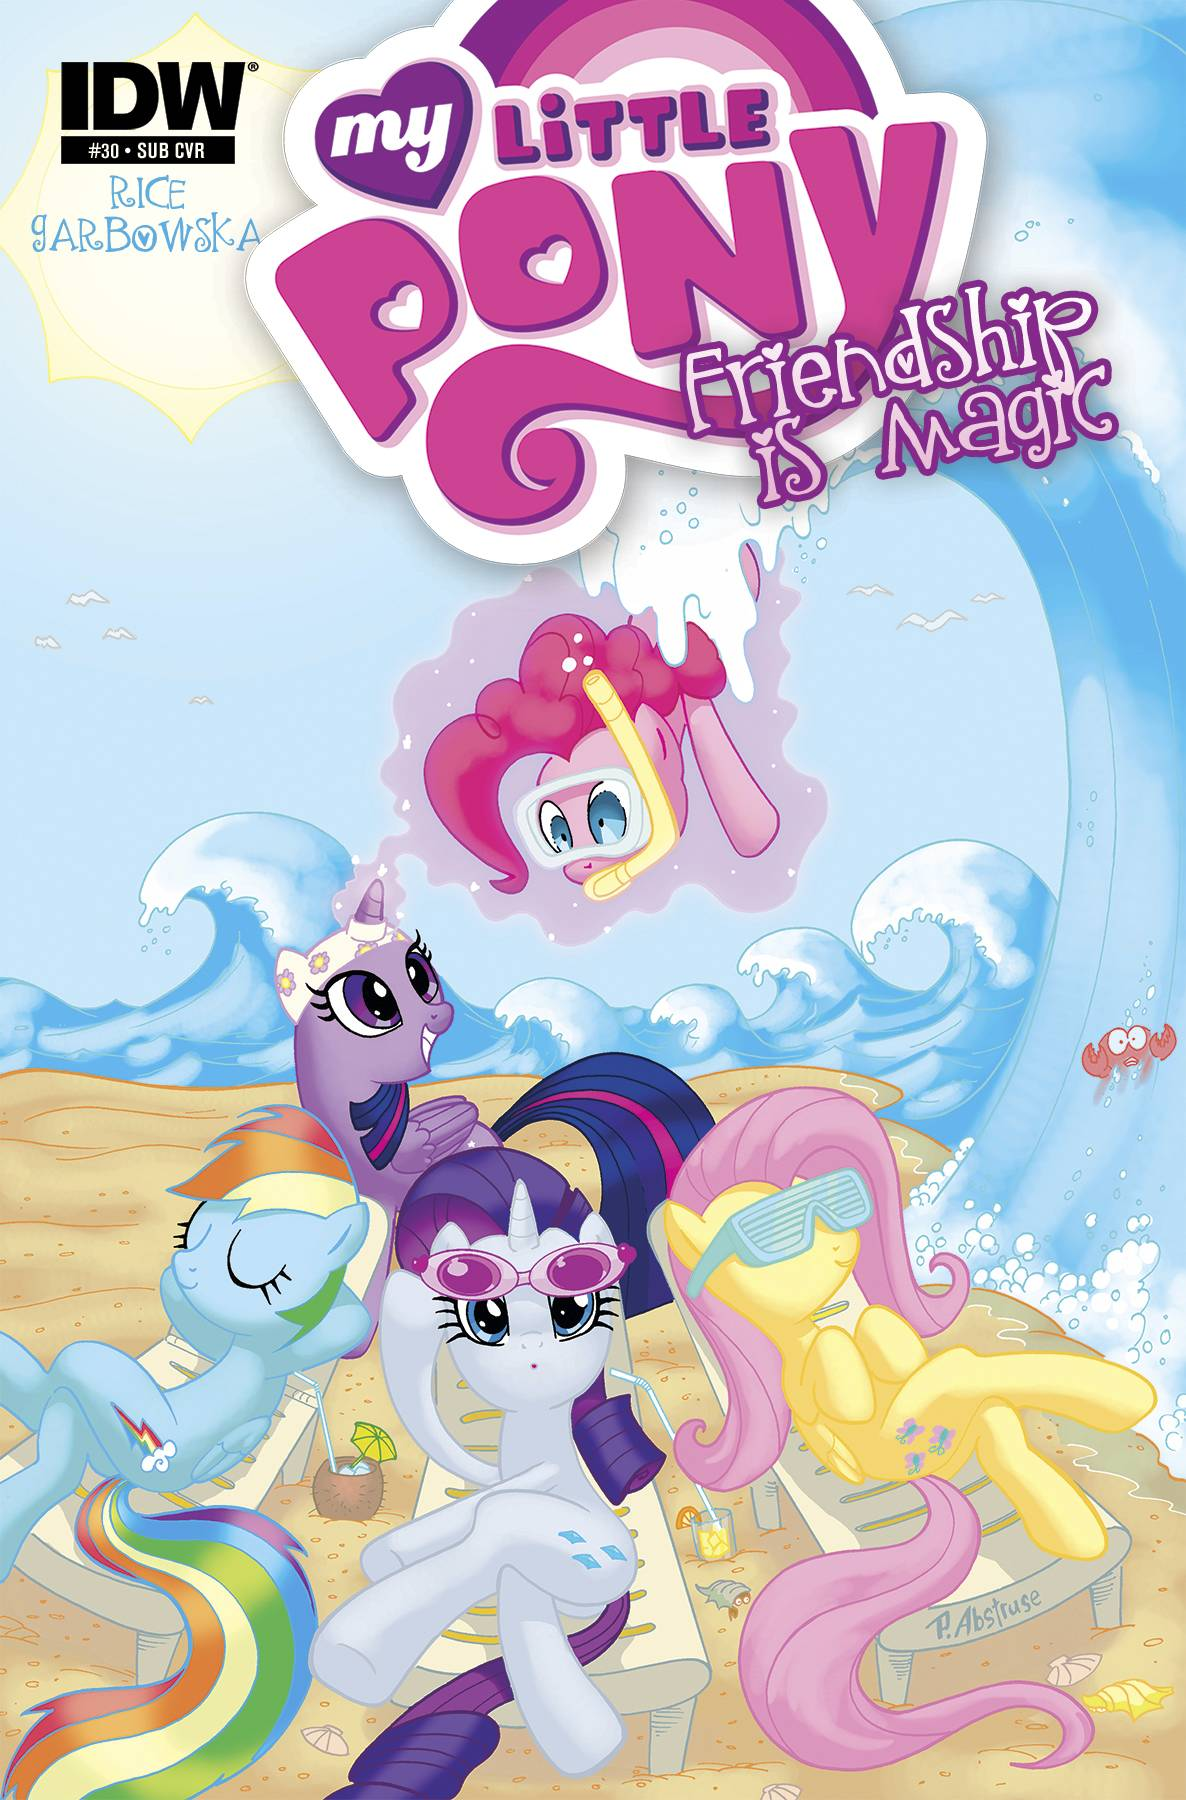 Accept. opinion, my little pony friendship is magic cover can